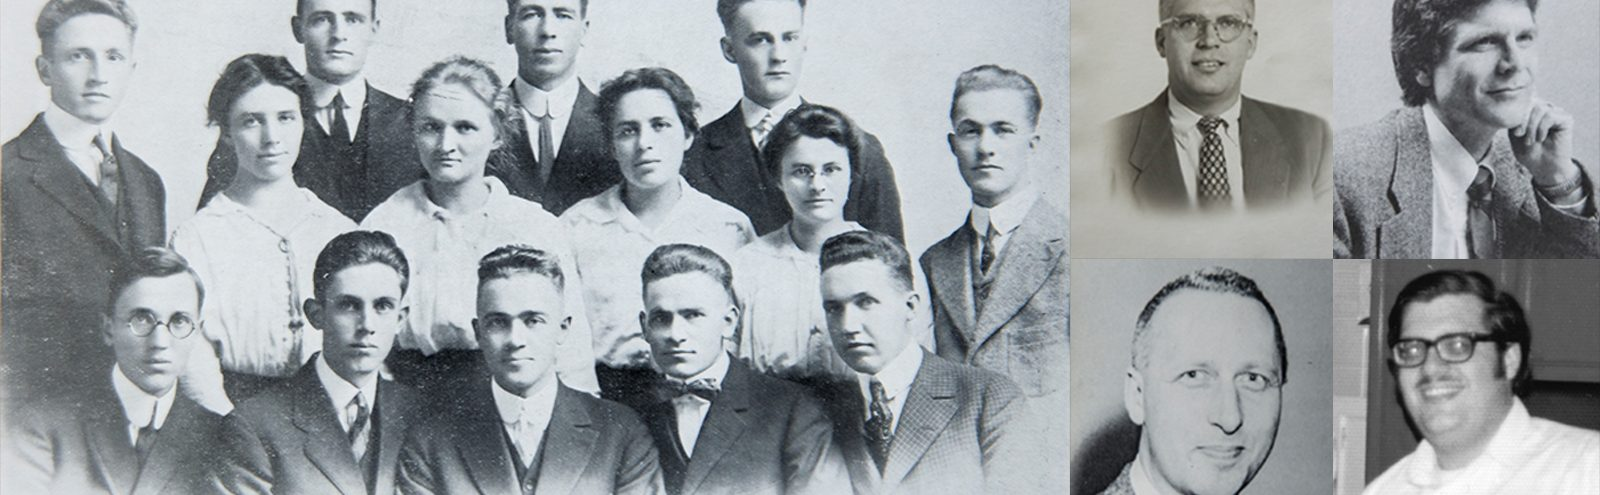 Collage of historical photos of the Bro Family at Northland College